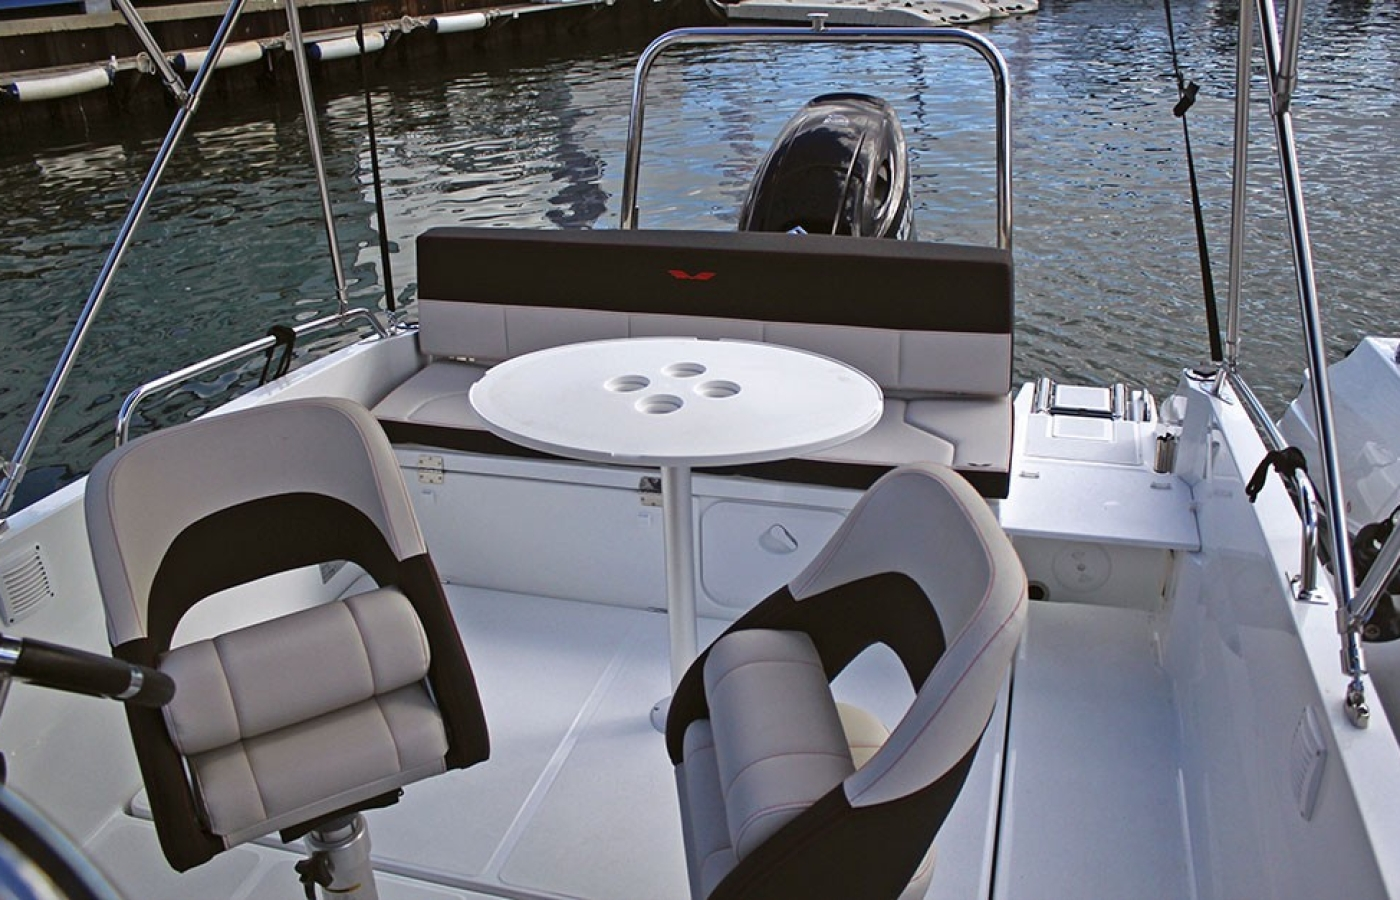 Seating area of the boat